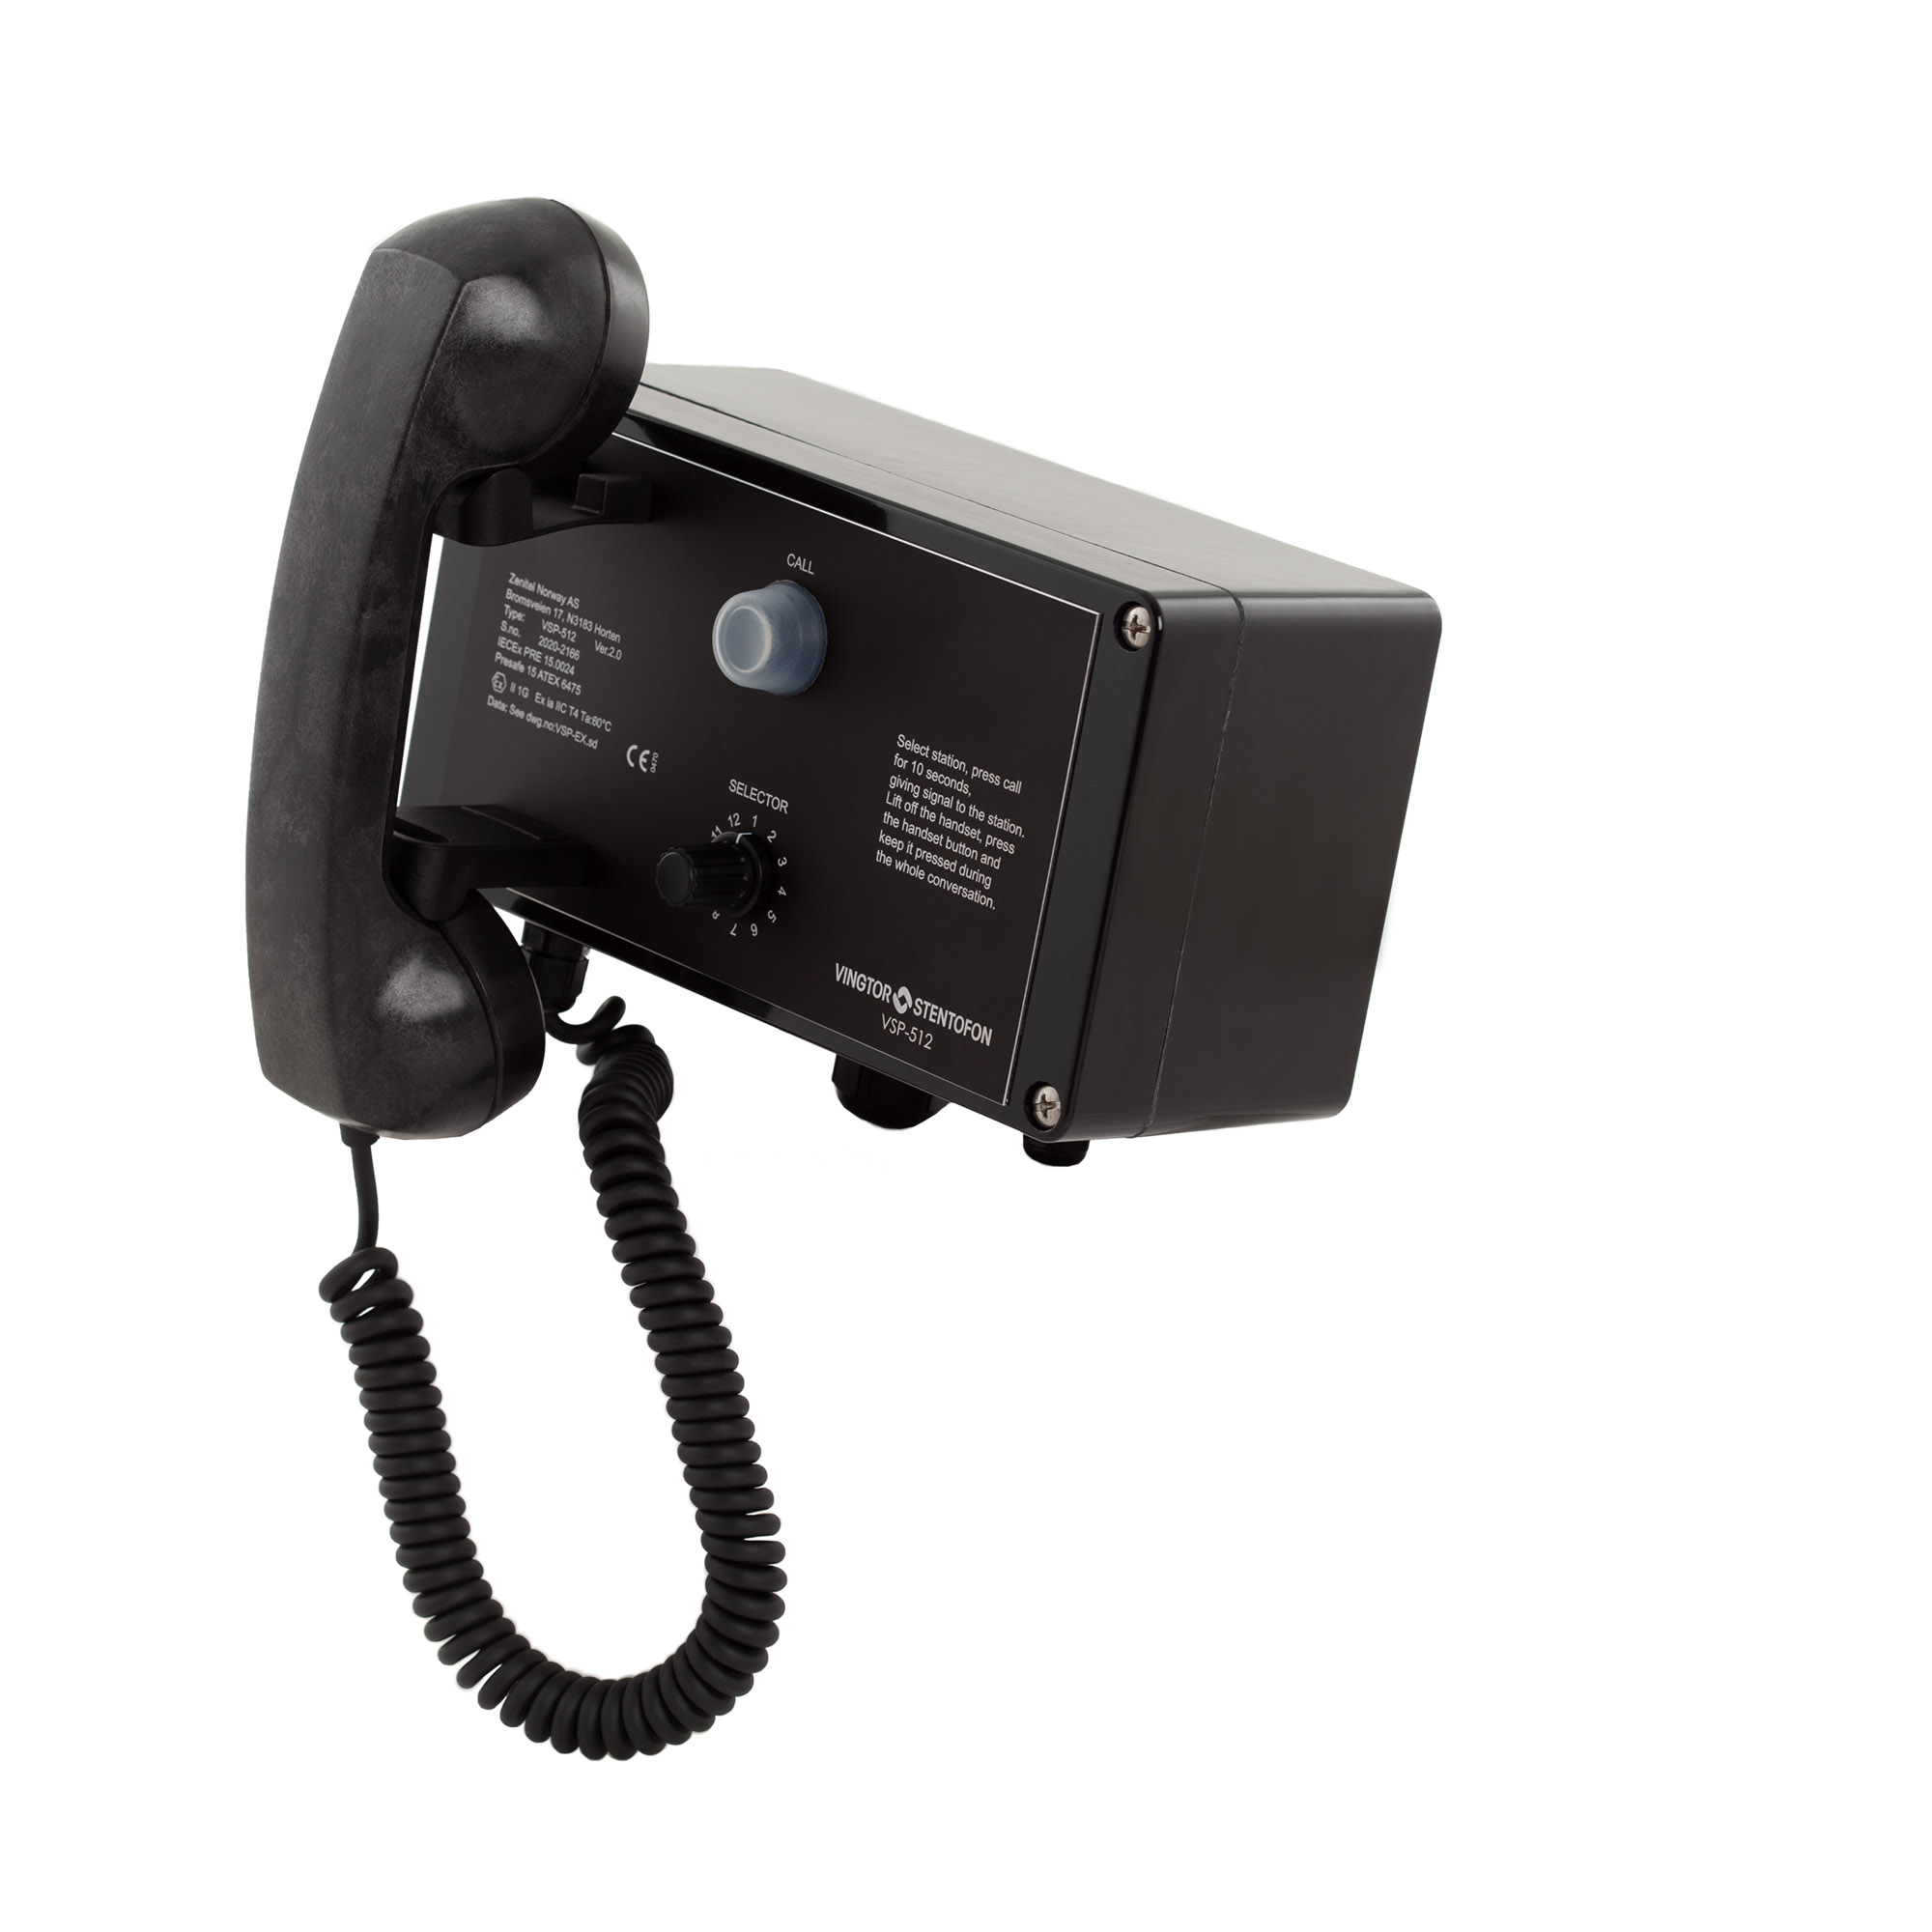 Batteryless Telephone for required onboard emergency communication